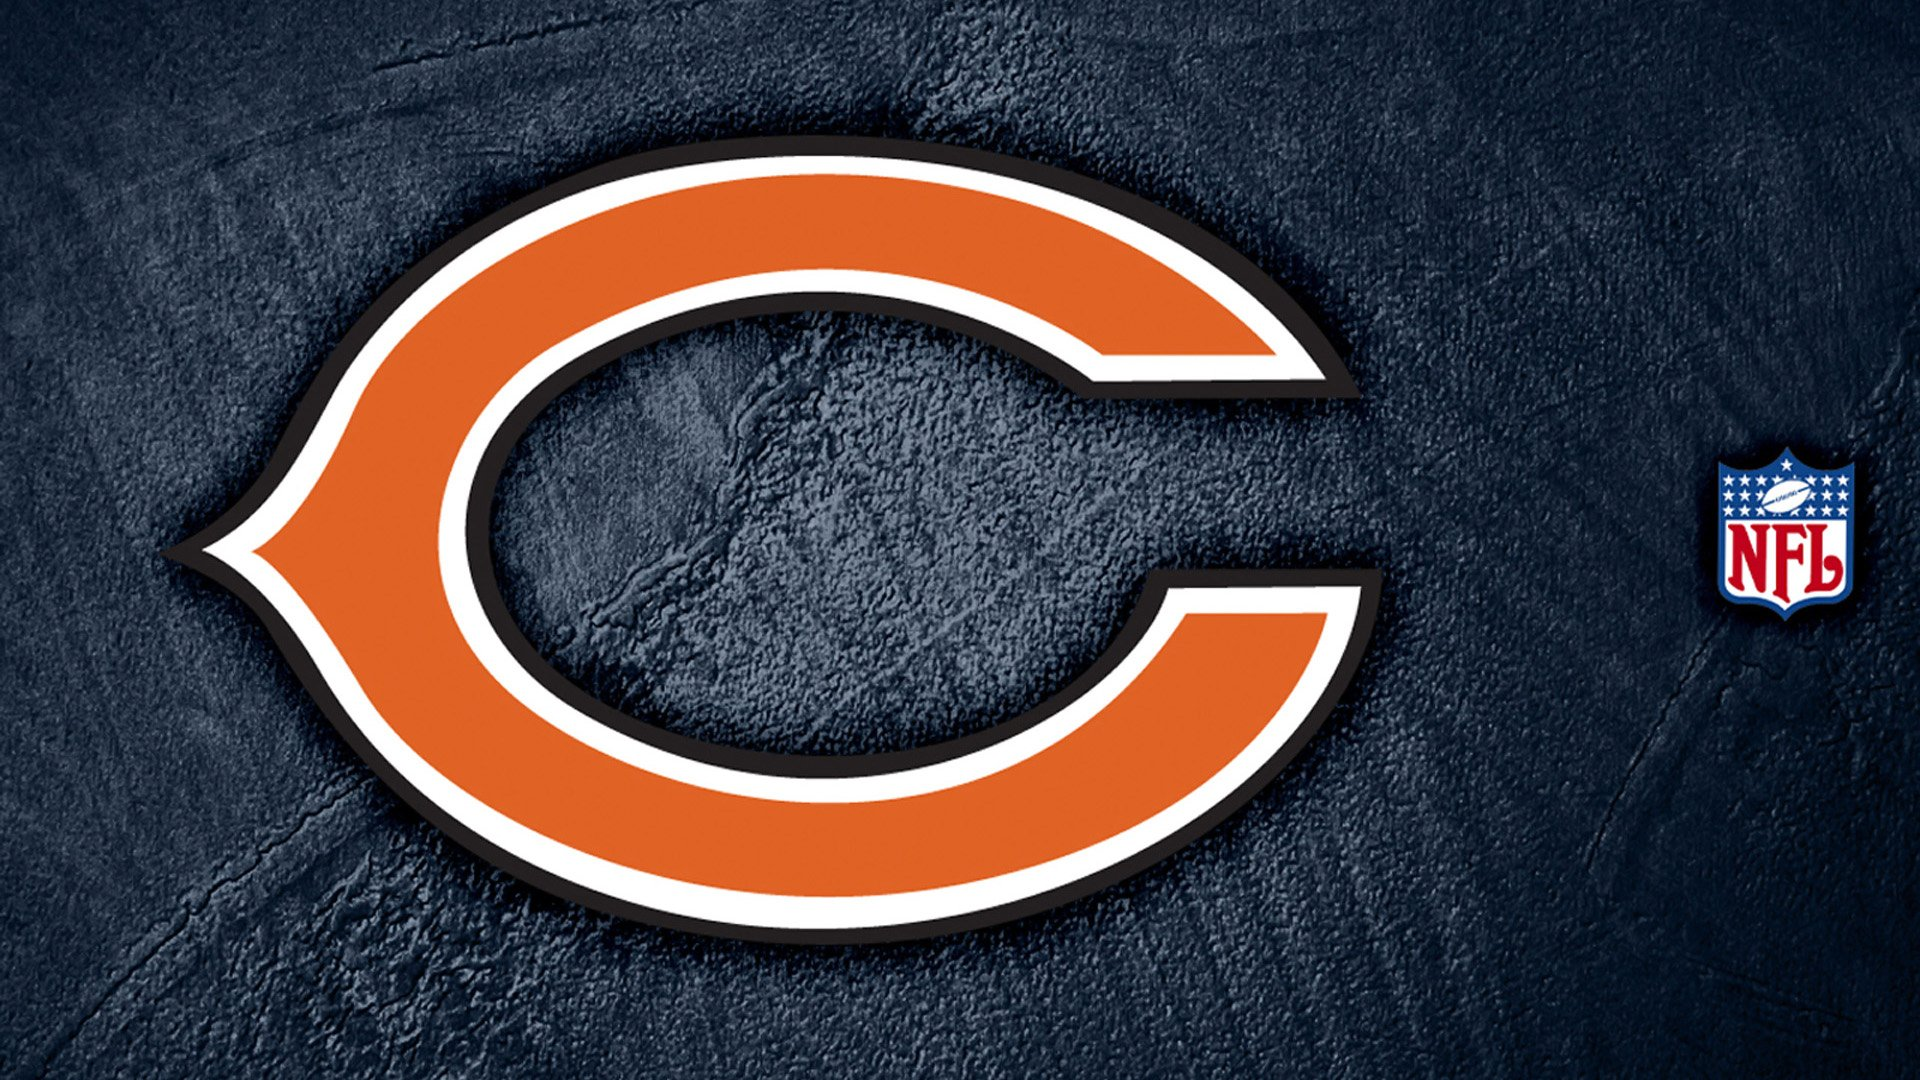 More Chicago Bears wallpaper wallpapers Chicago Bears wallpapers 1920x1080